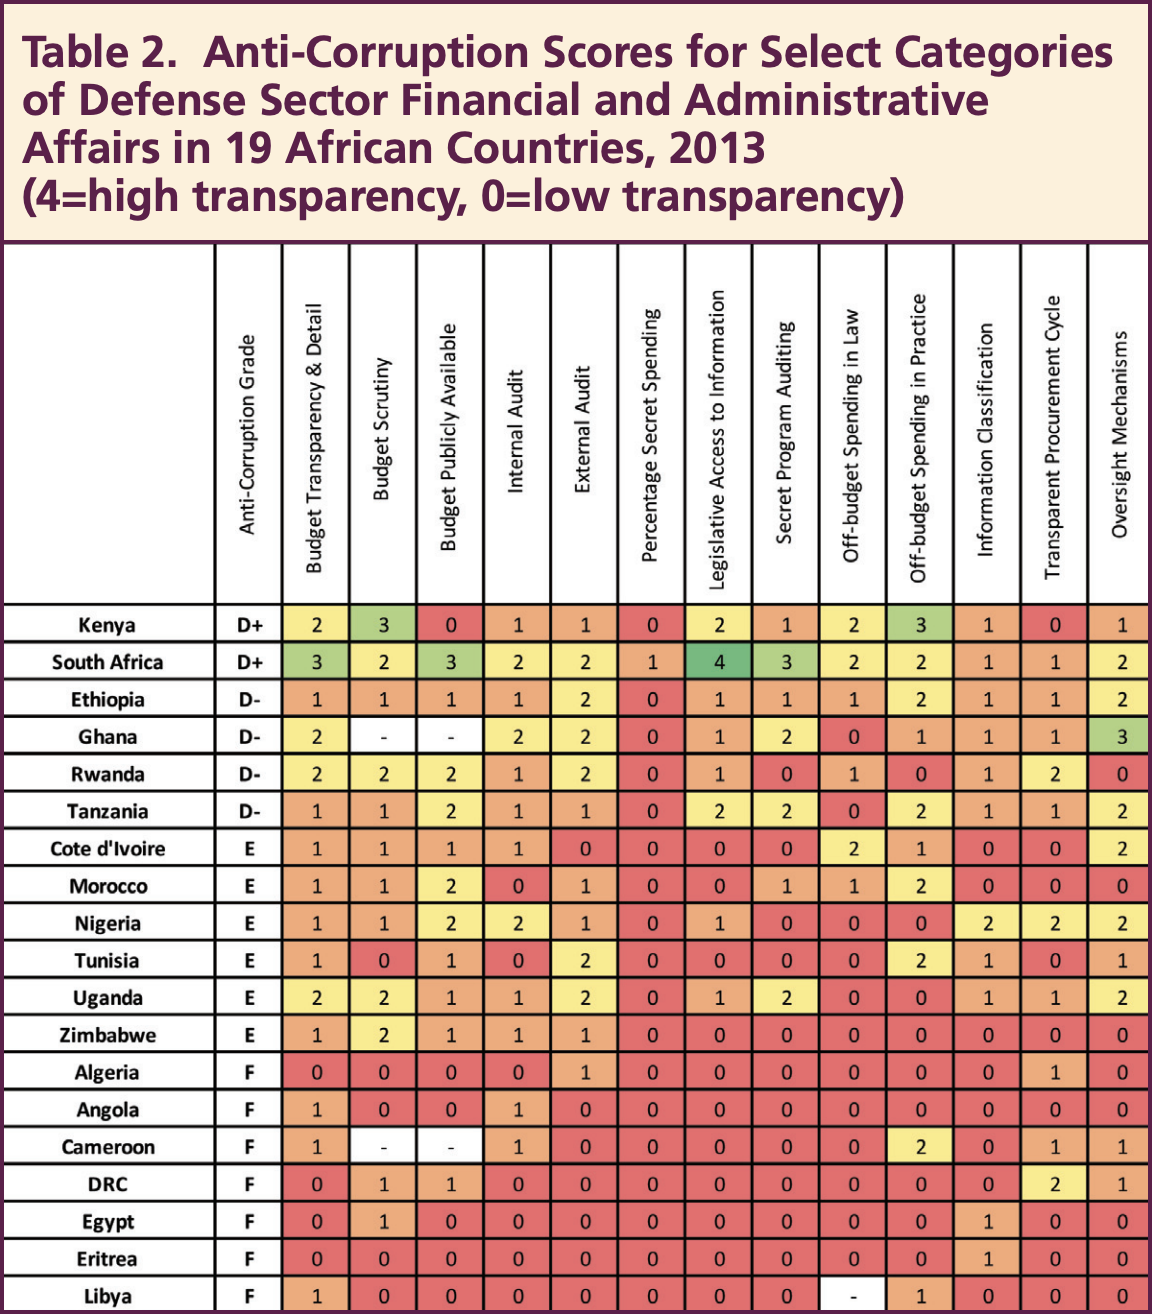 Table 2: Anti-Corruption Scores for Select Categories of Defense Sector Financial and Administrative Affairs in 19 African Countries, 2013